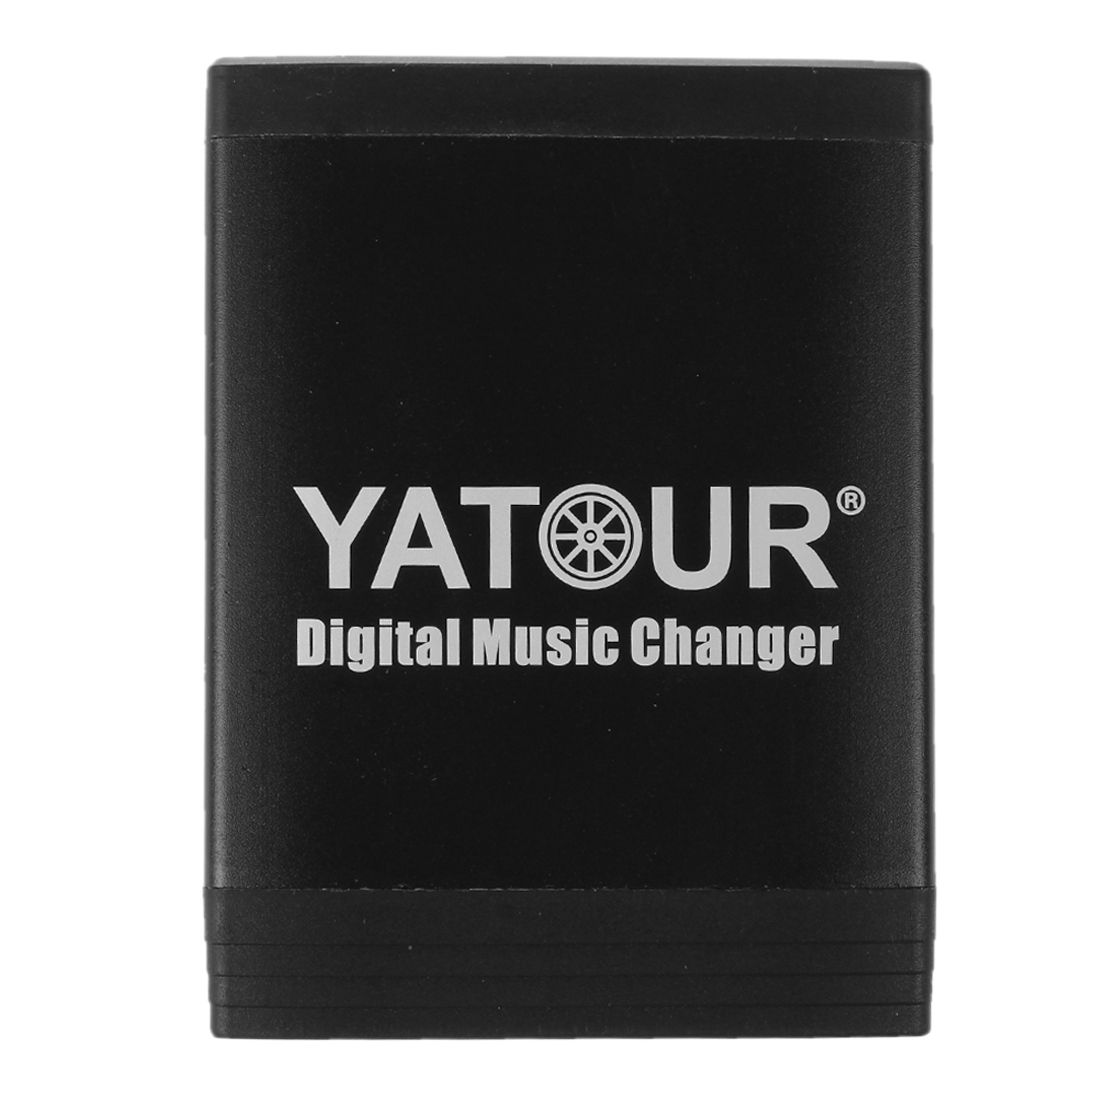 YATOUR Digital Music Changer for BMW 3pin+6pin Trunk Connector USB Sd AUX Mp3 Adapter apps2car usb sd aux car mp3 music adapter car stereo radio digital music changer for volvo c70 1995 2005 [fits select oem radio]